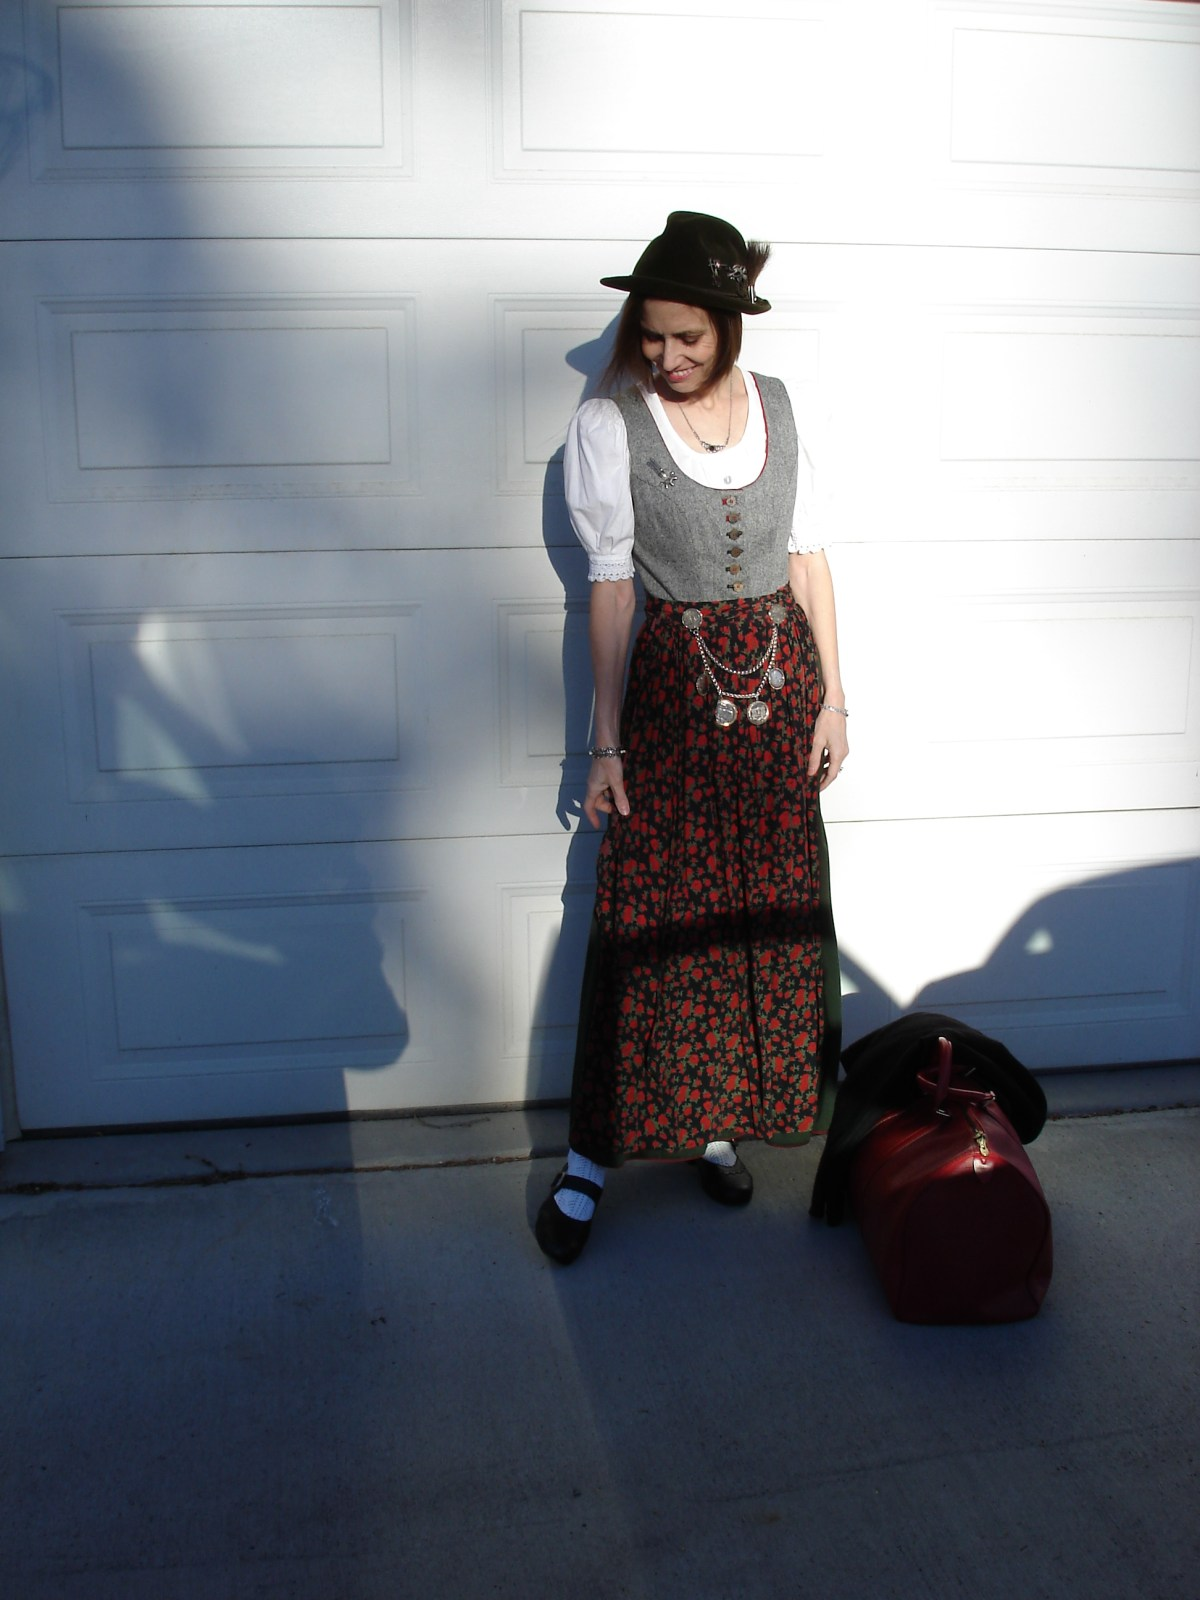 woman with Tyrolean hat